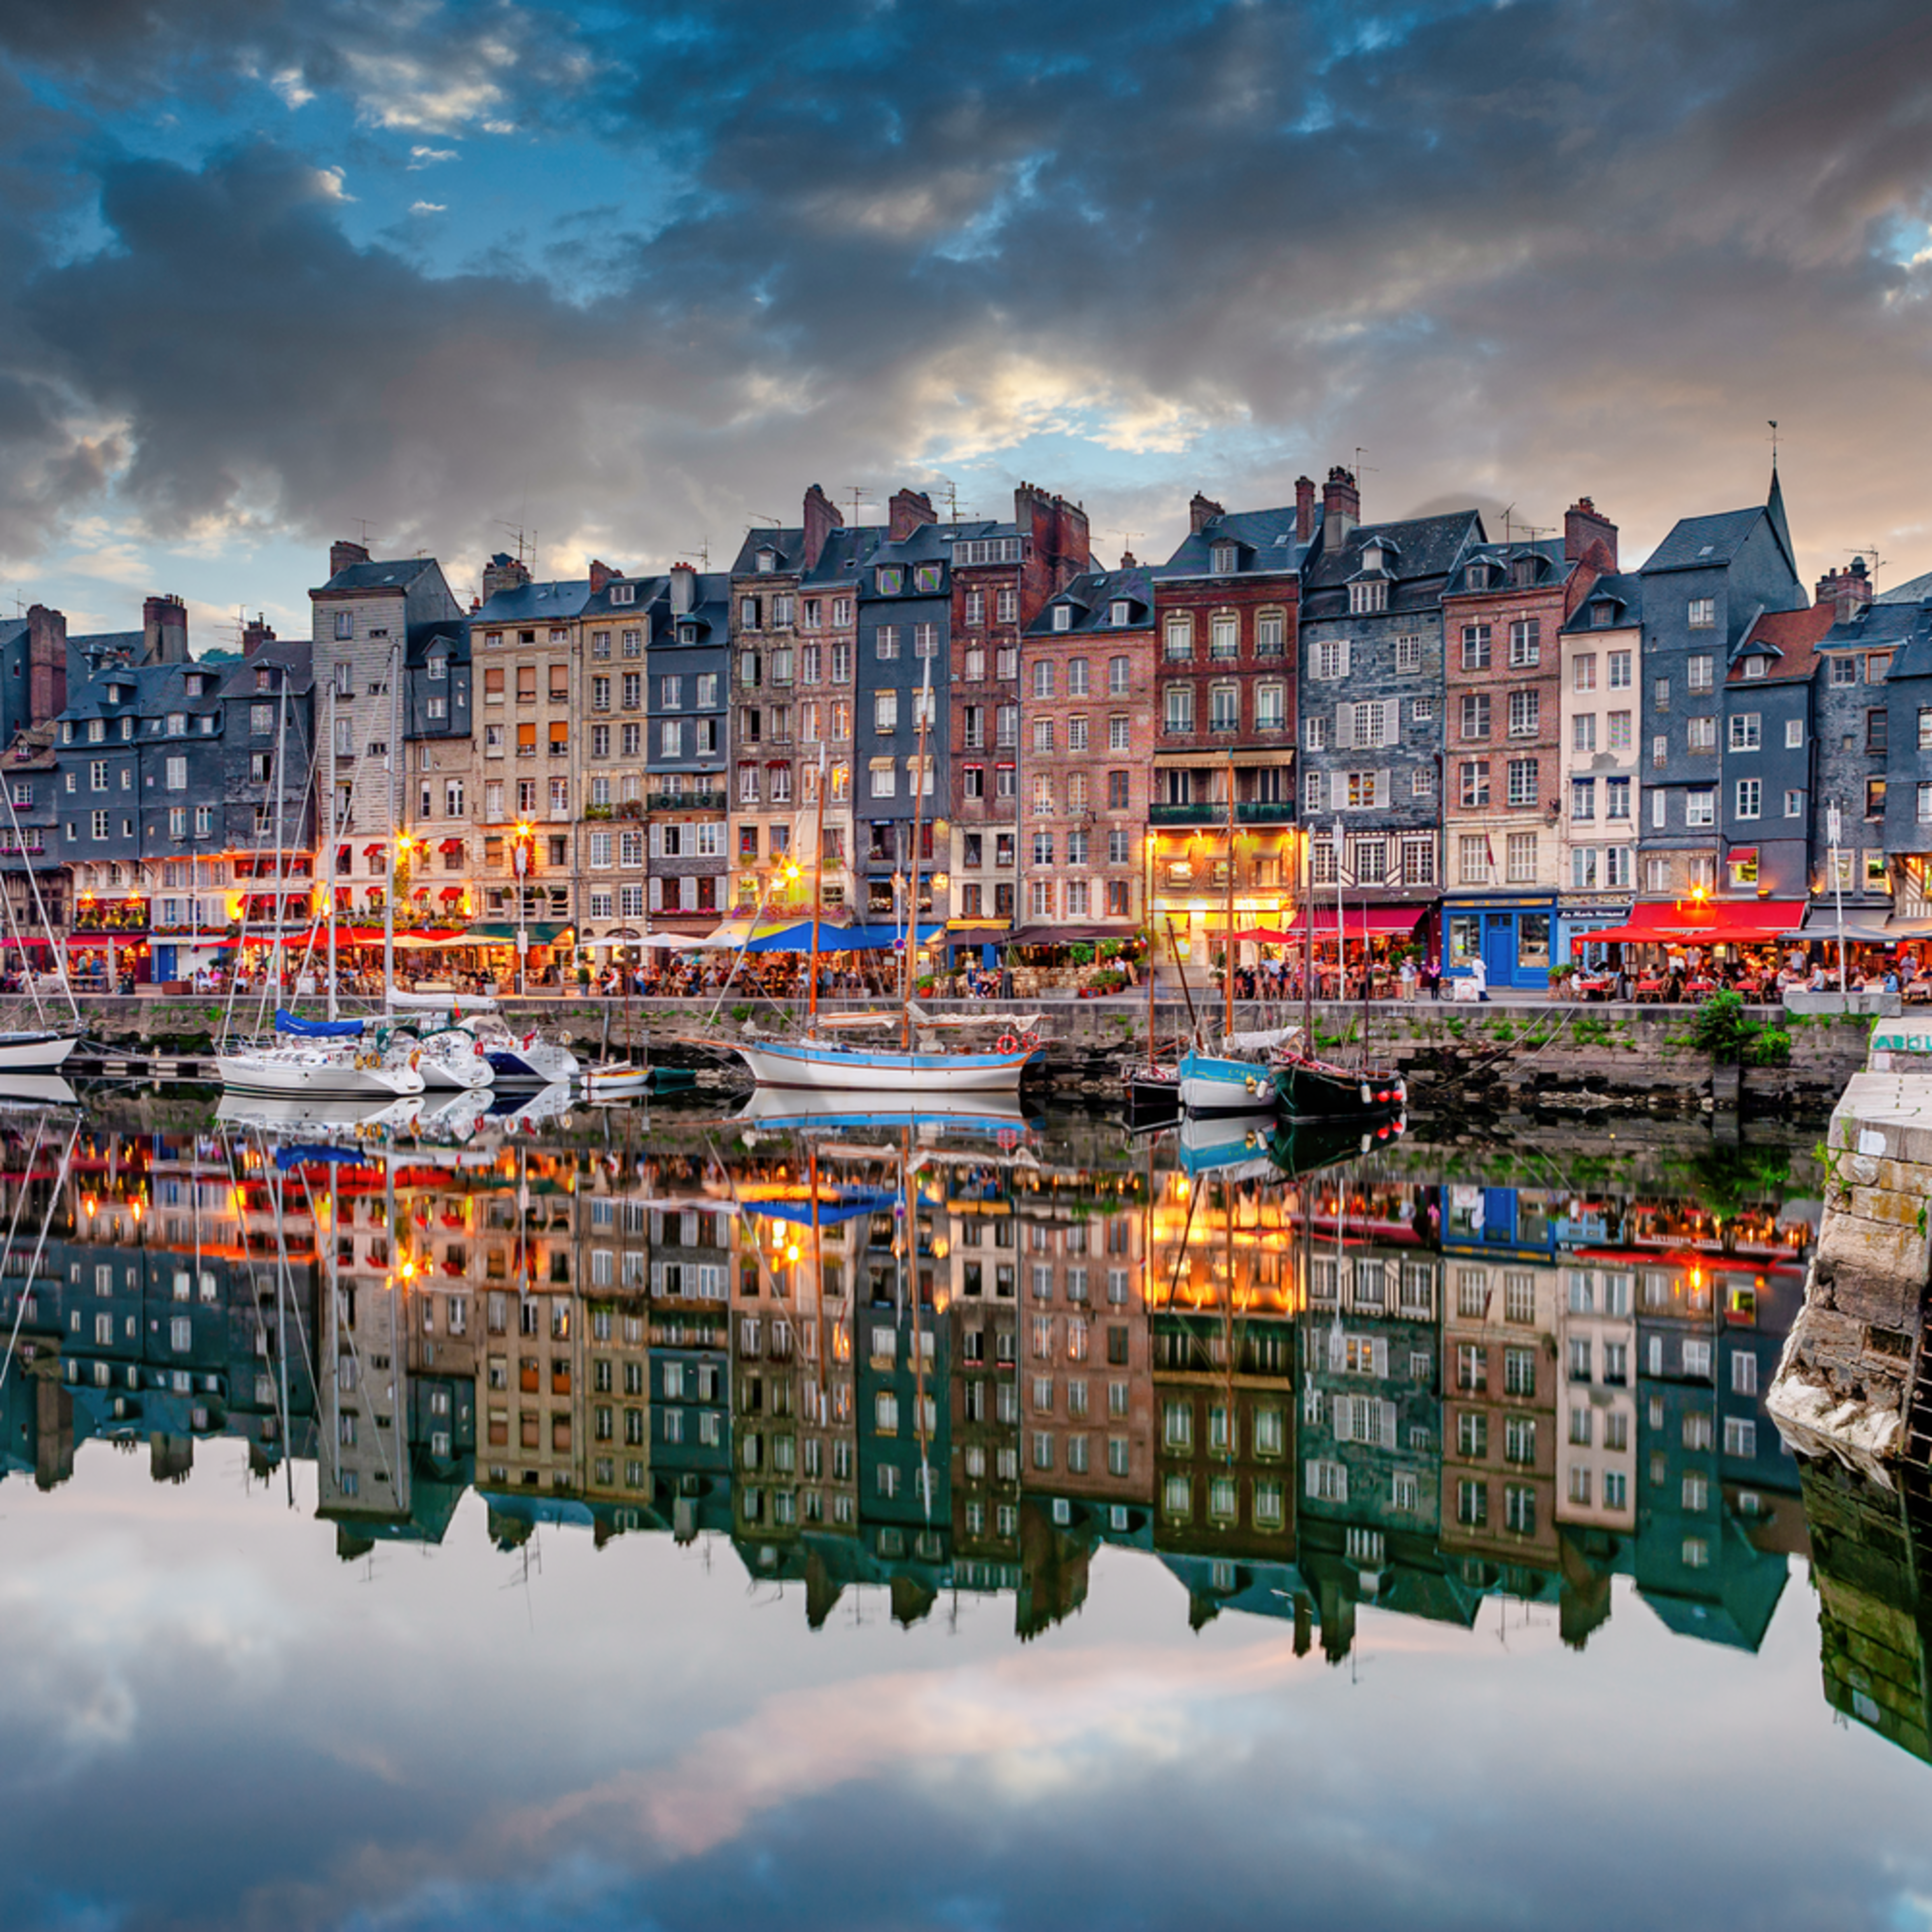 Honfleur and resturants by docks and sunset normandy france wnyyrn